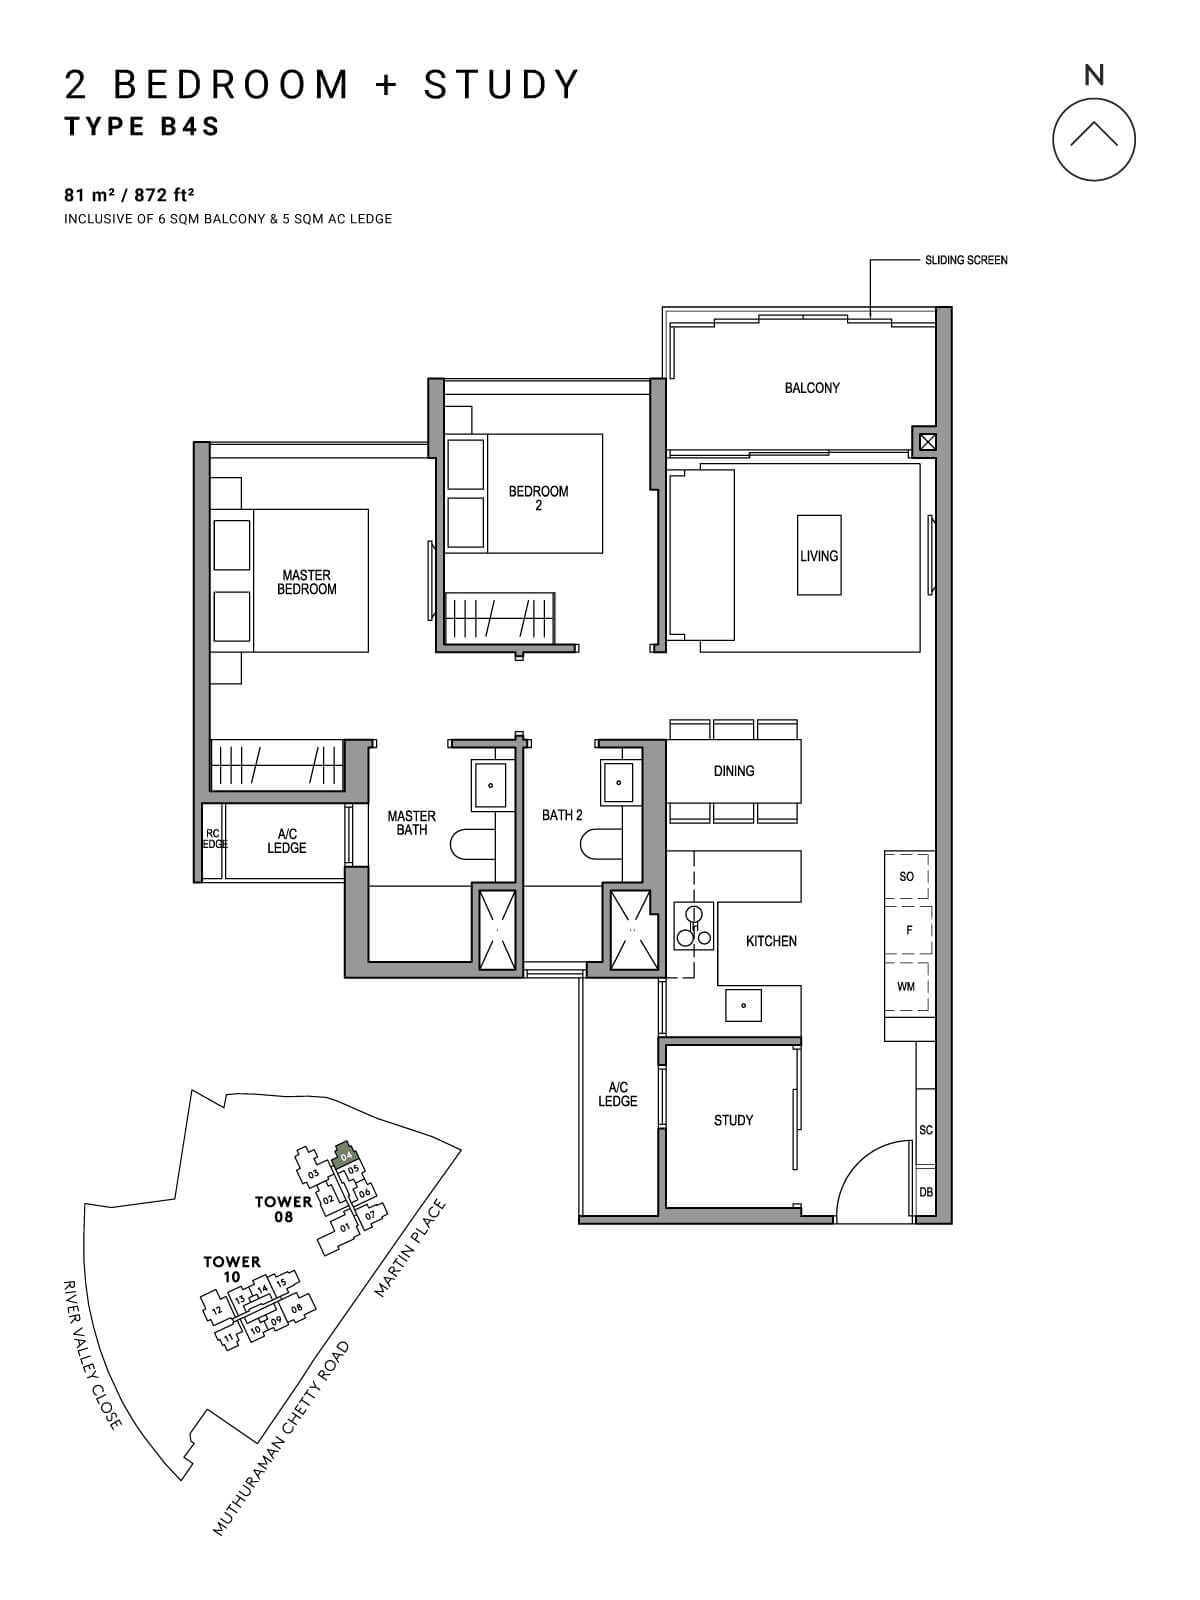 Martin Modern Floor Plan 2 Bedroom + Study Type B4S